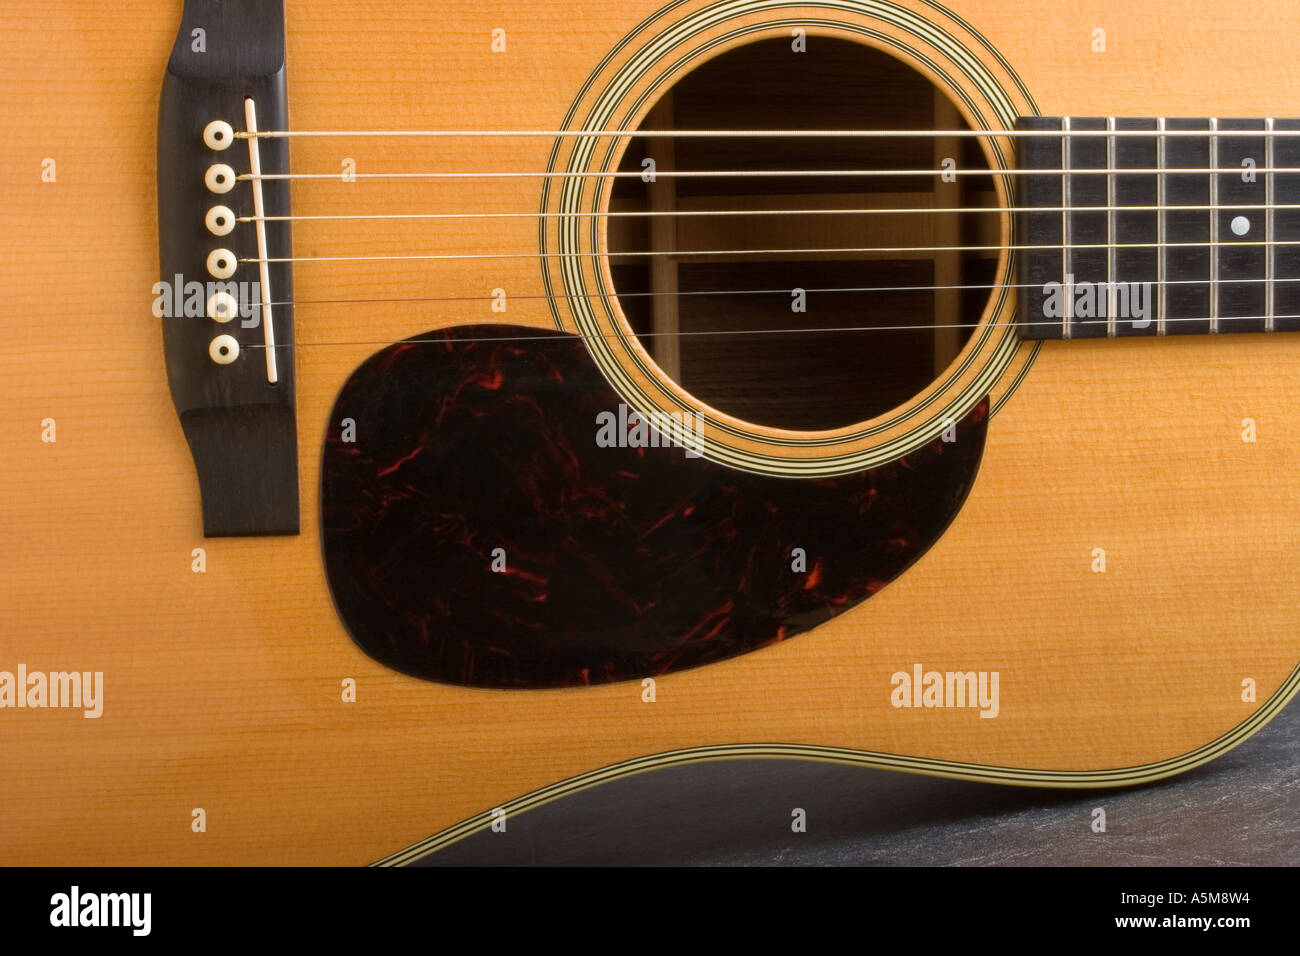 close up of a martin d28 acoustic guitar showing the body bridge stock photo royalty free image. Black Bedroom Furniture Sets. Home Design Ideas